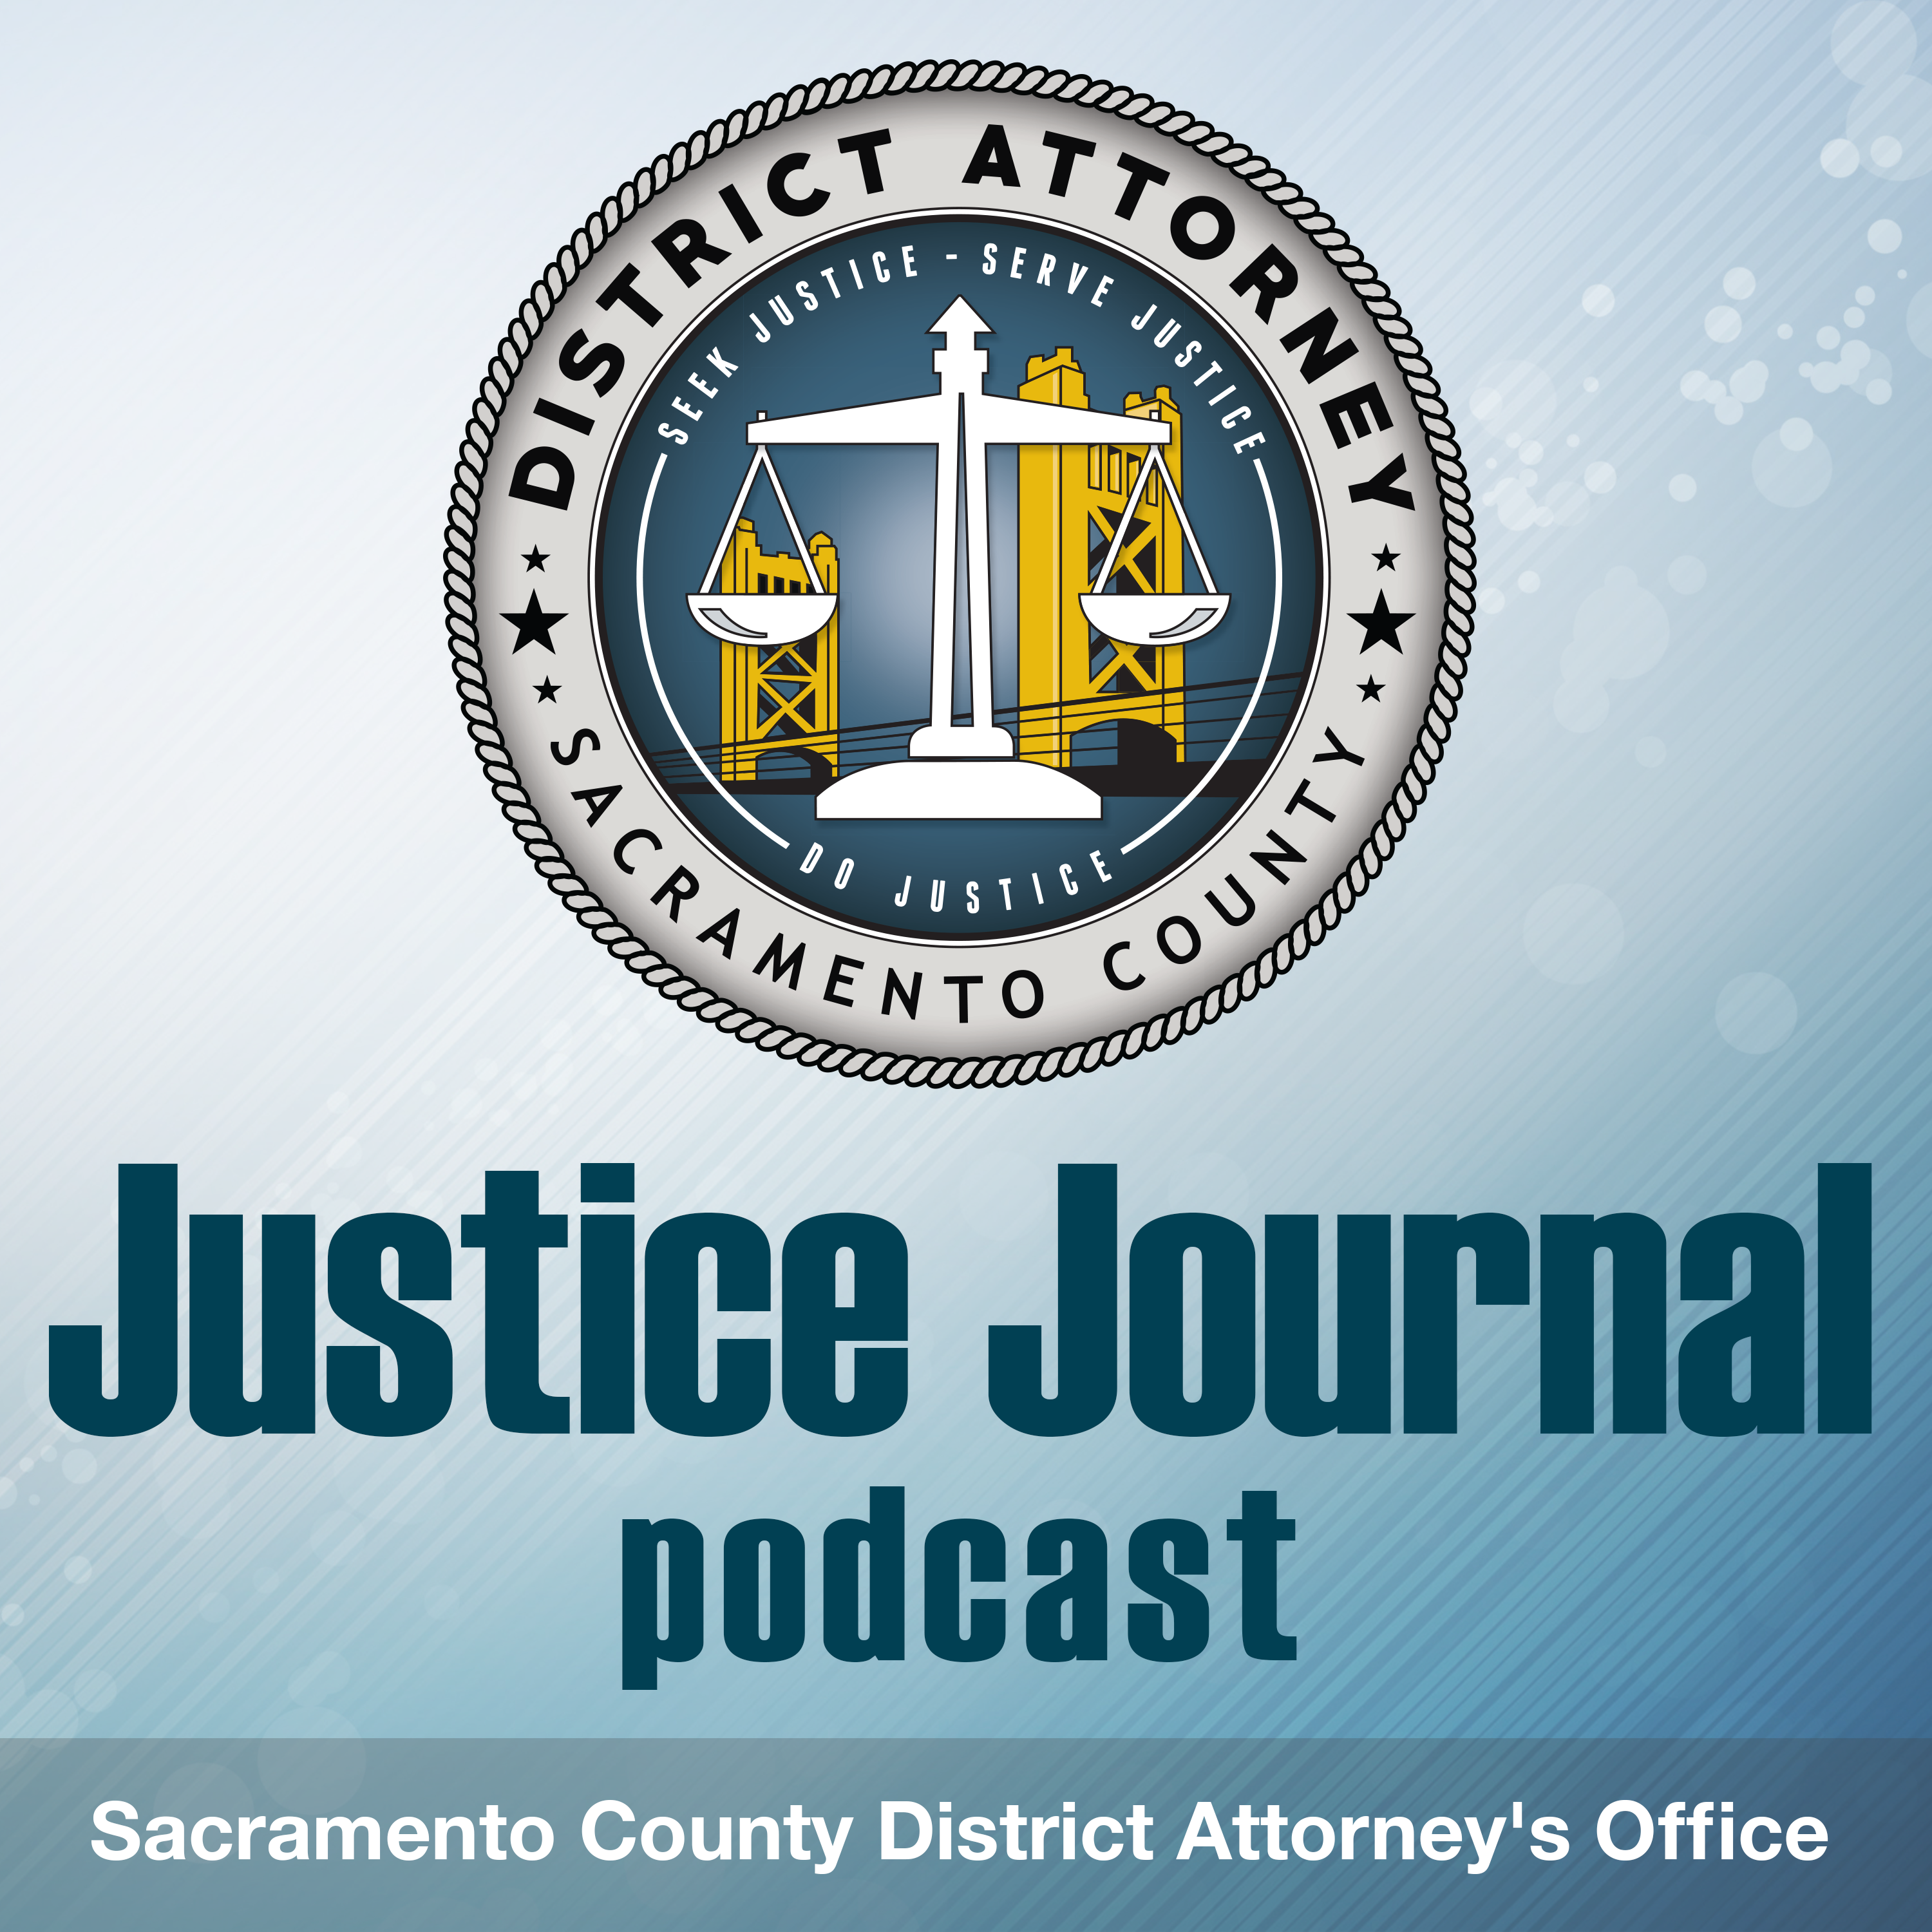 COVID-19: Impact On Invictus Youth Foundation's Mission To Serve Youth And Future Events, Activities - Justice Journal Episode 38